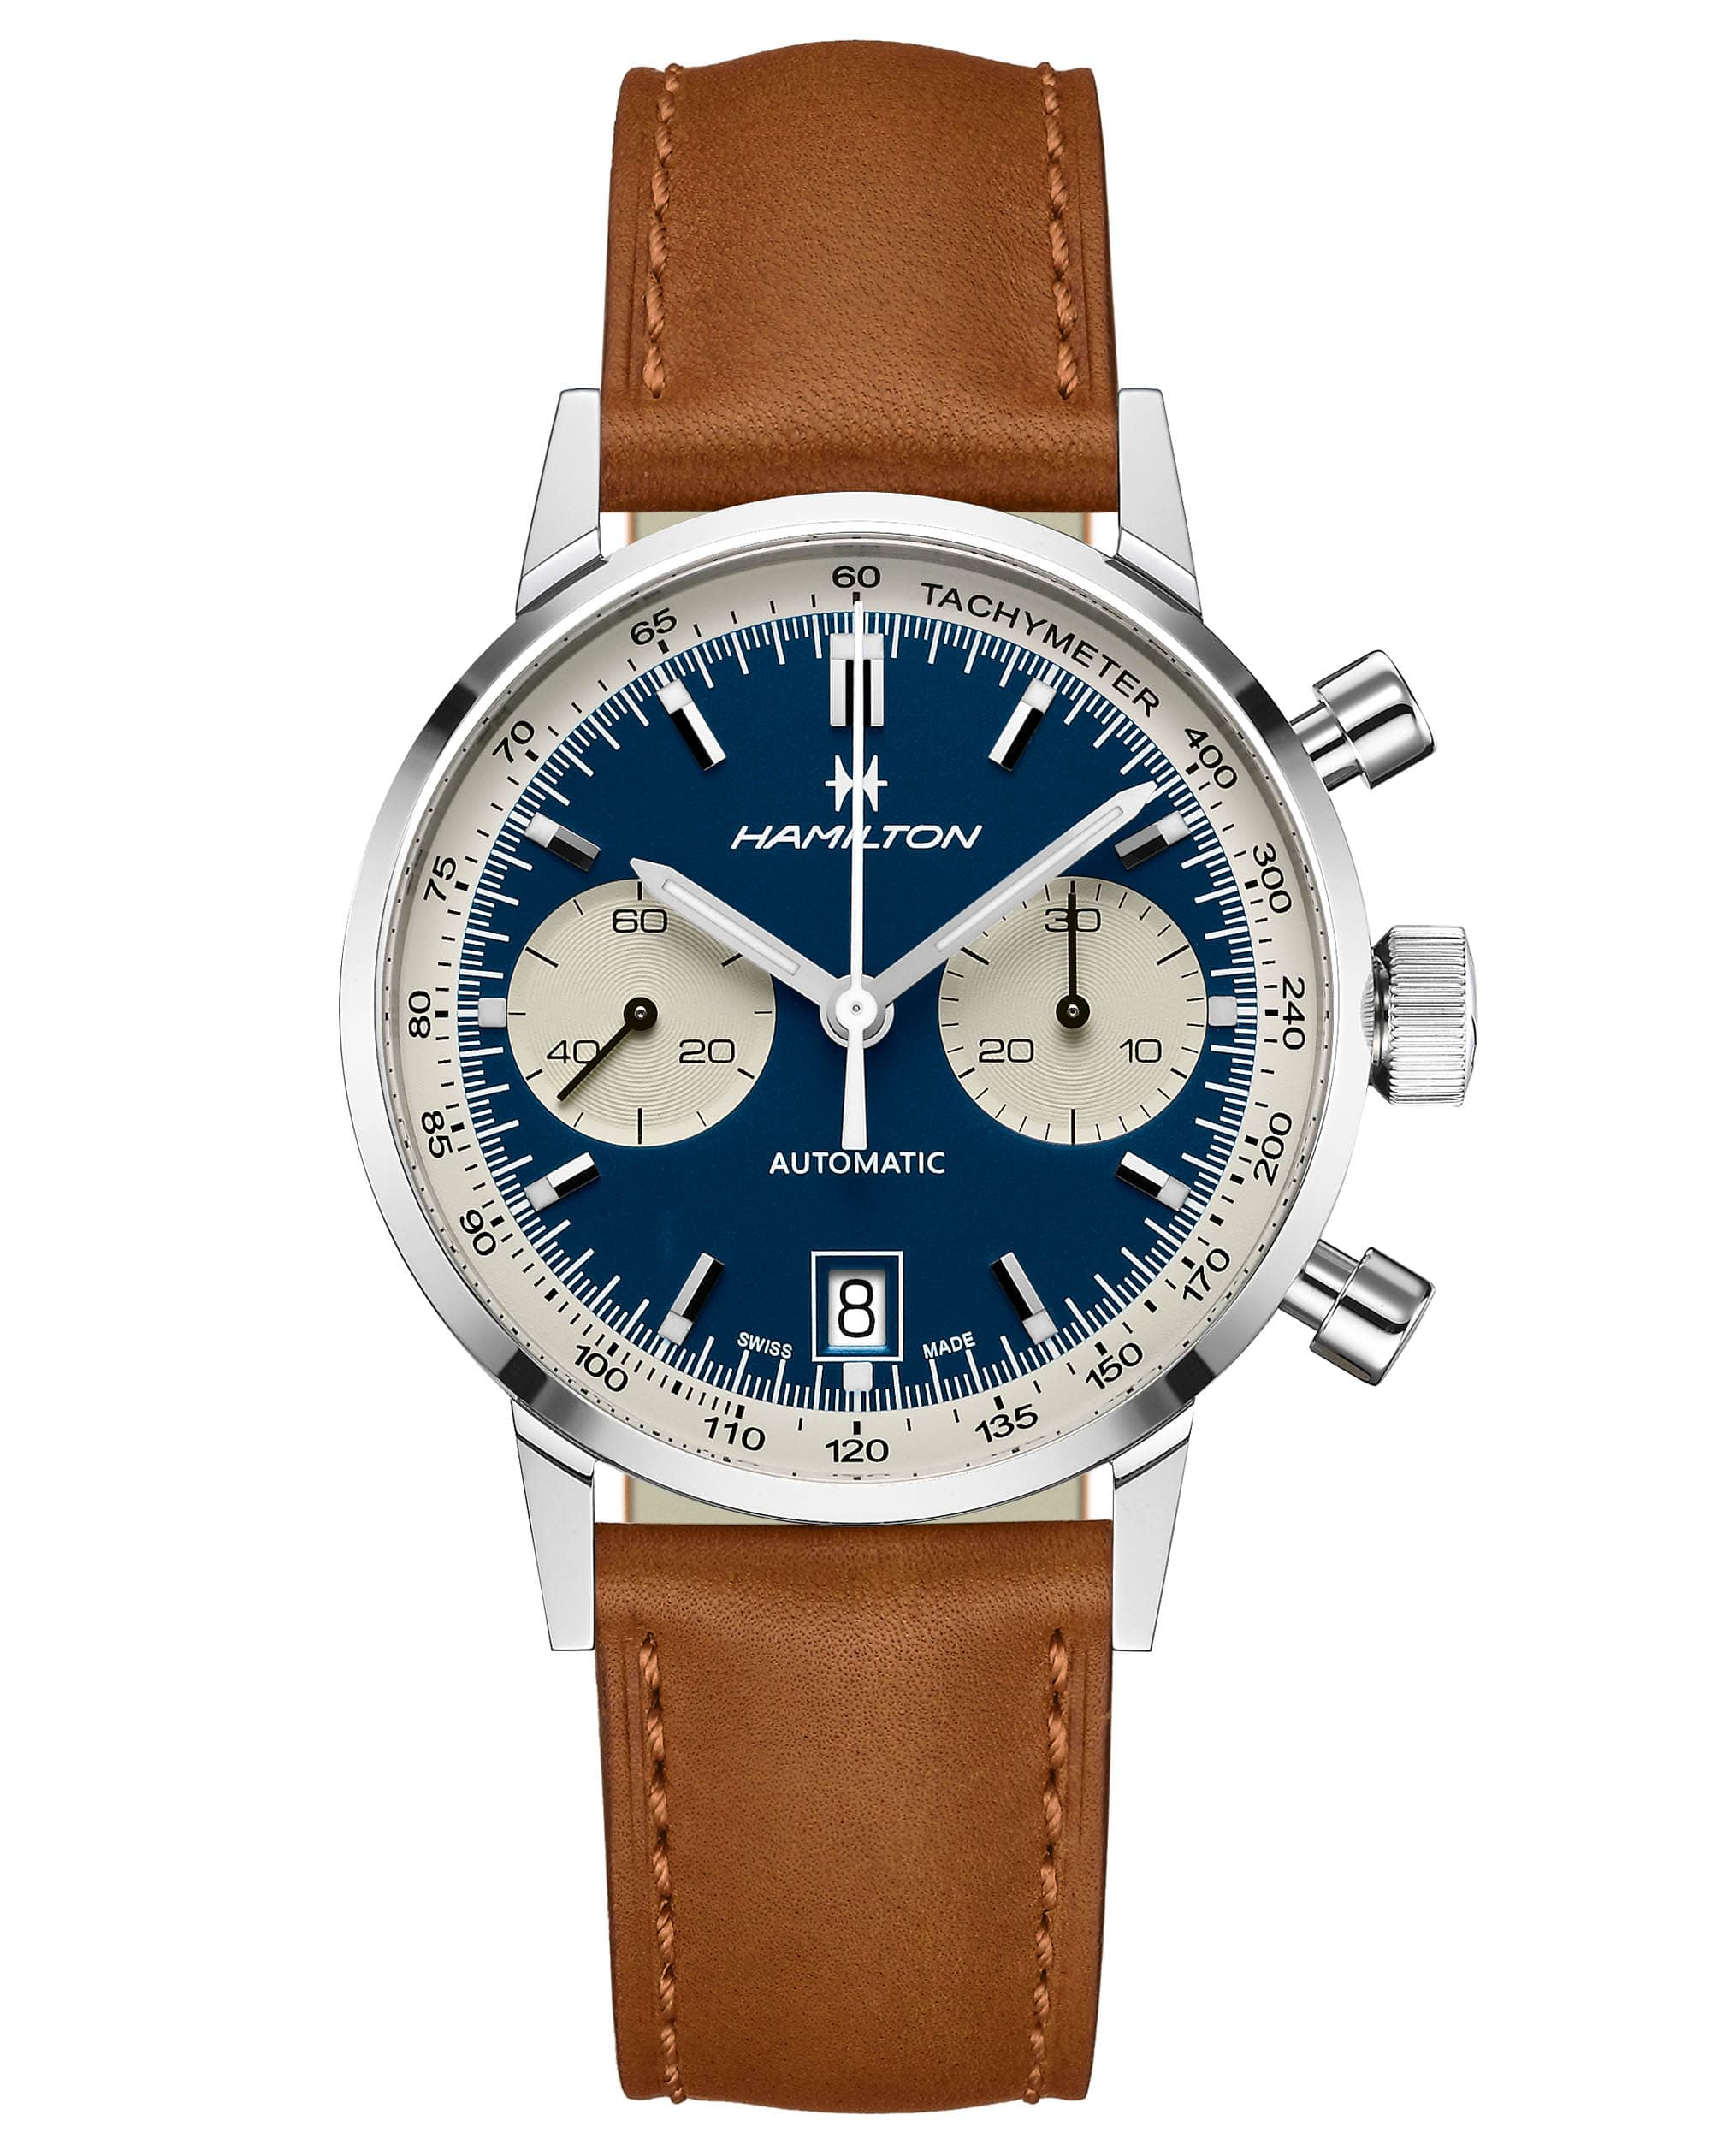 Hamilton American Classic Intra-matic Auto Chrono Watch H38416541 Front View